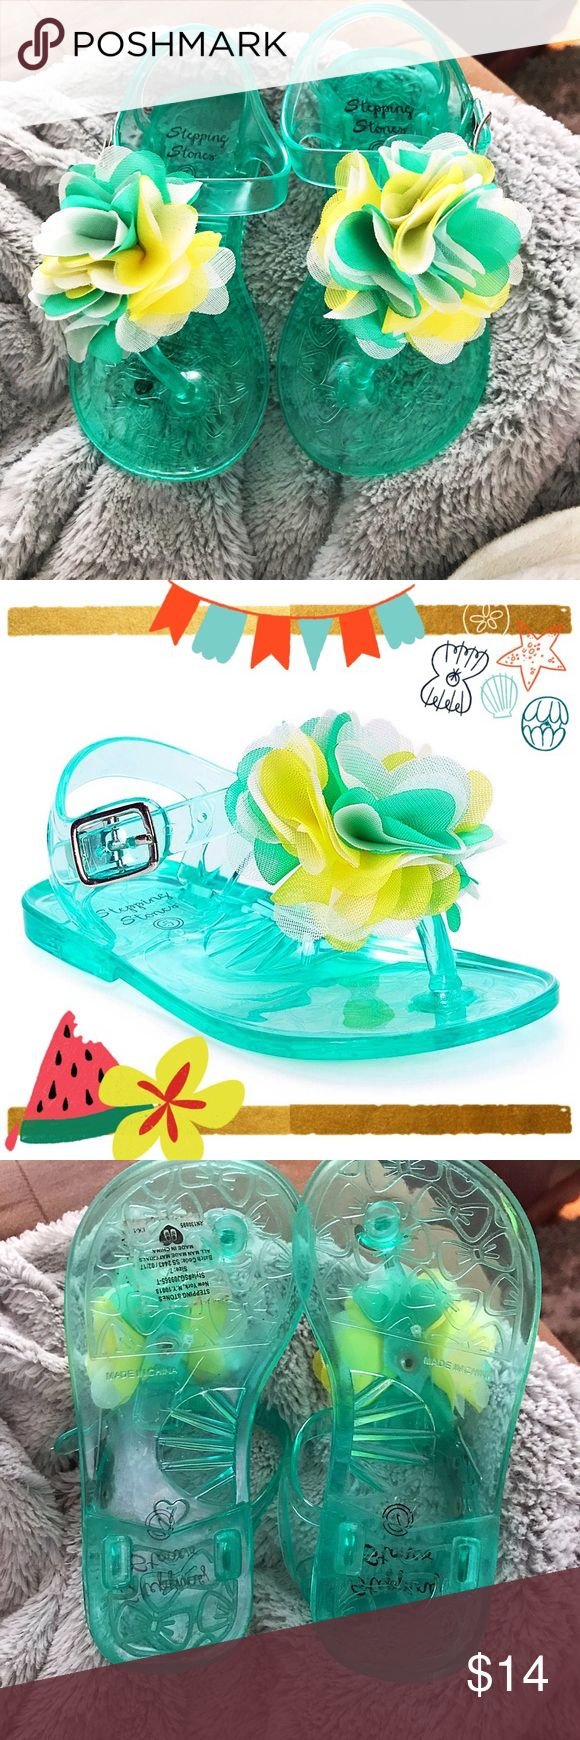 💚 Rosette Jellies 💛 💚💛new without tags! 💛💚 Accessorize her look with these adorable ѕandalѕ 💚Stepping Stones sandals Jelly plastic upper Thong toe Buckle at ankle 💚💚 Turquoise, Yellow, and White Chiffon rosette at forefoot. 💚 Color: Turquoise 💚 Size 7 ĸιdѕ 💛 stepping stones Shoes Sandals & Flip Flops